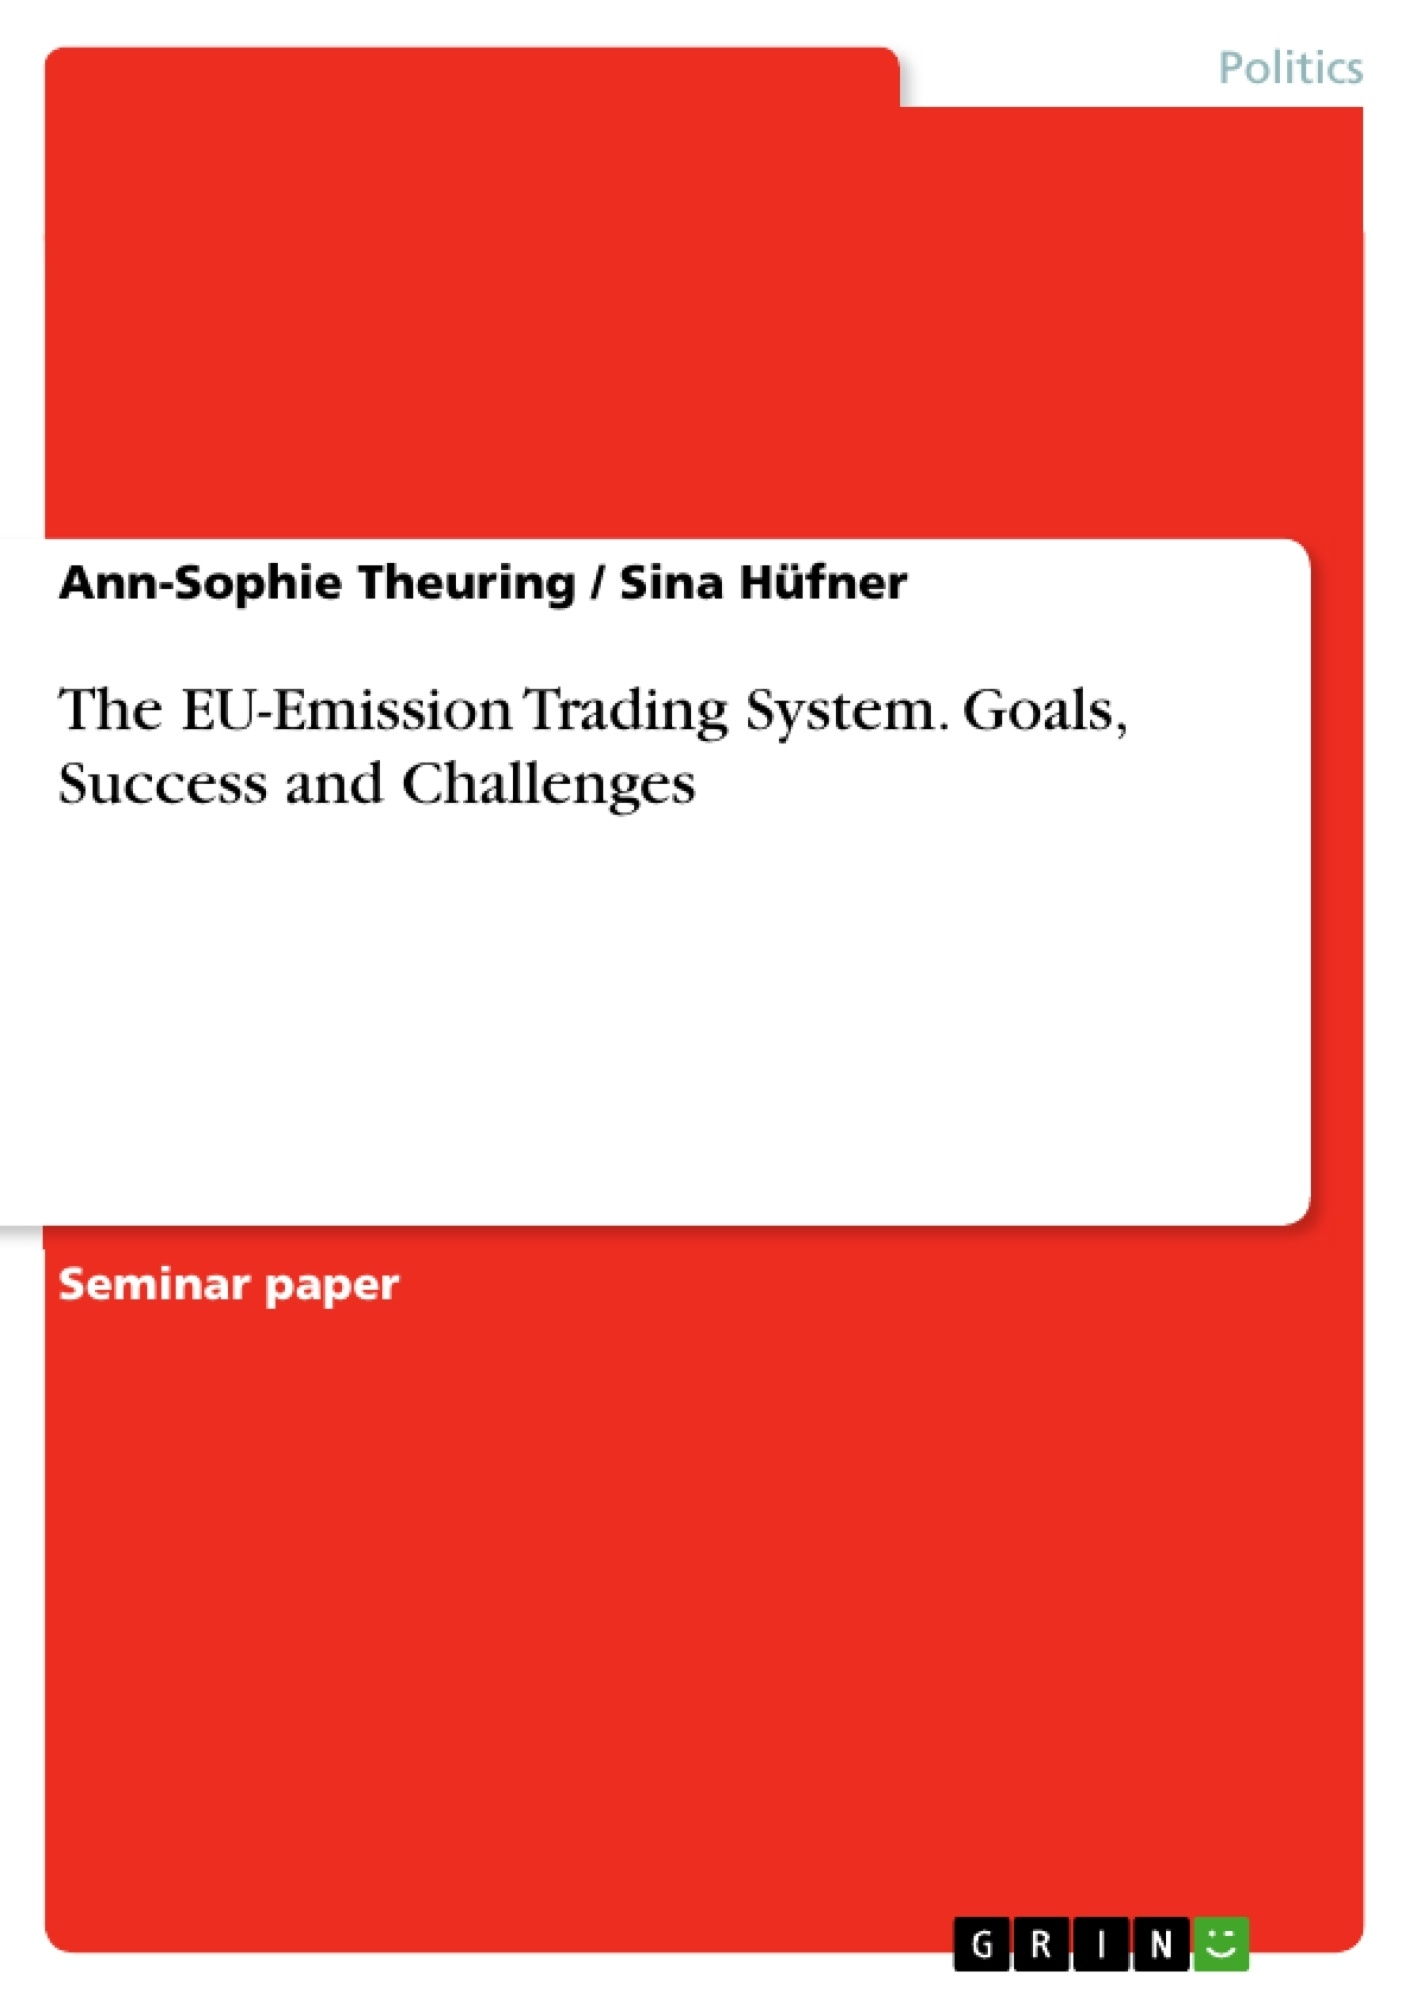 Title: The EU-Emission Trading System. Goals, Success and Challenges